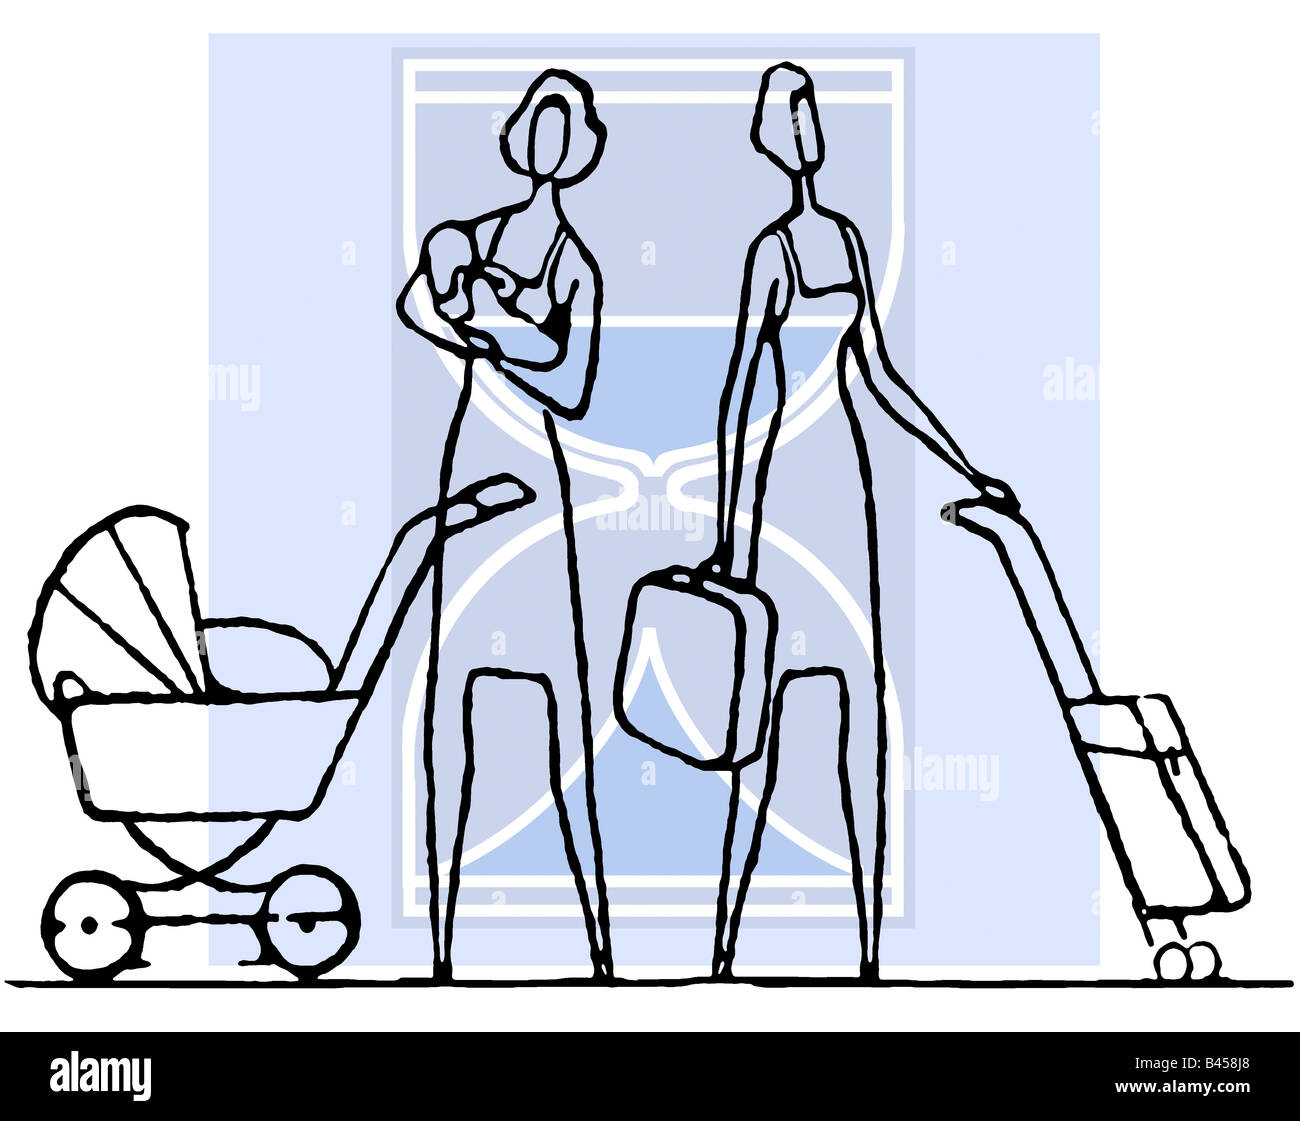 Woman with baby carriage - Stock Image